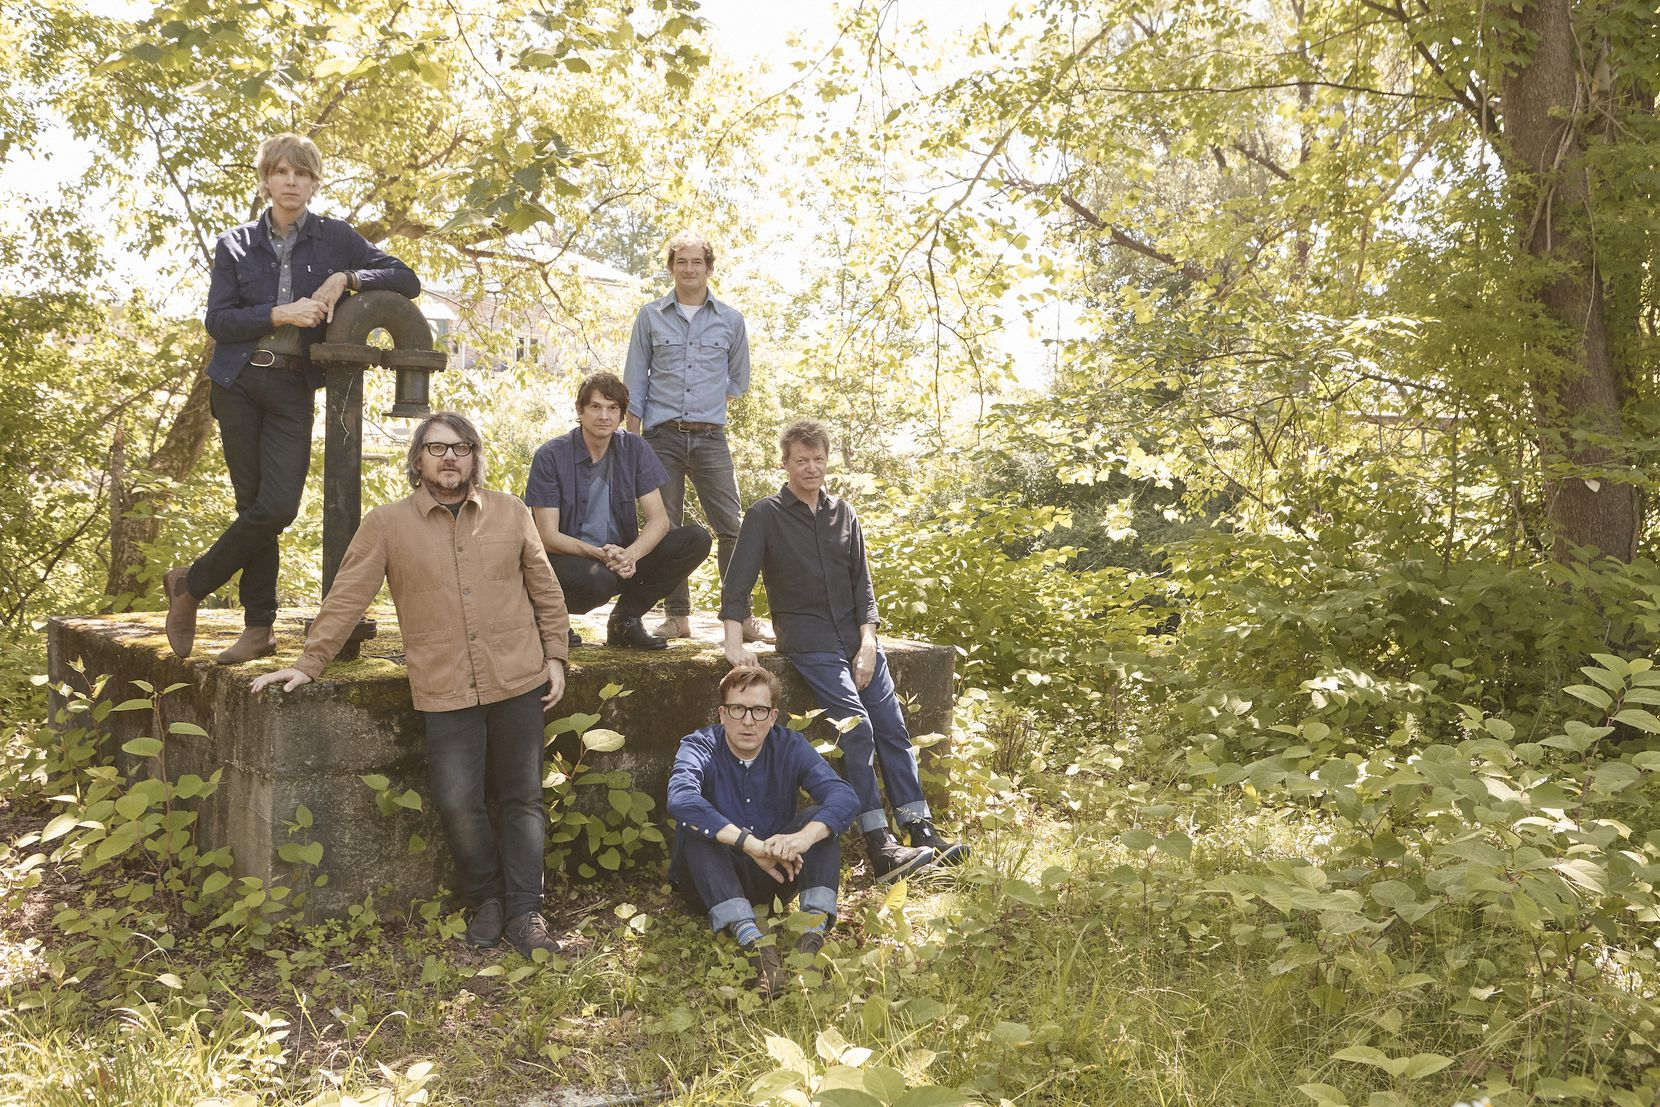 Jeff Tweedy, second from left, poses with members of the band Wilco.